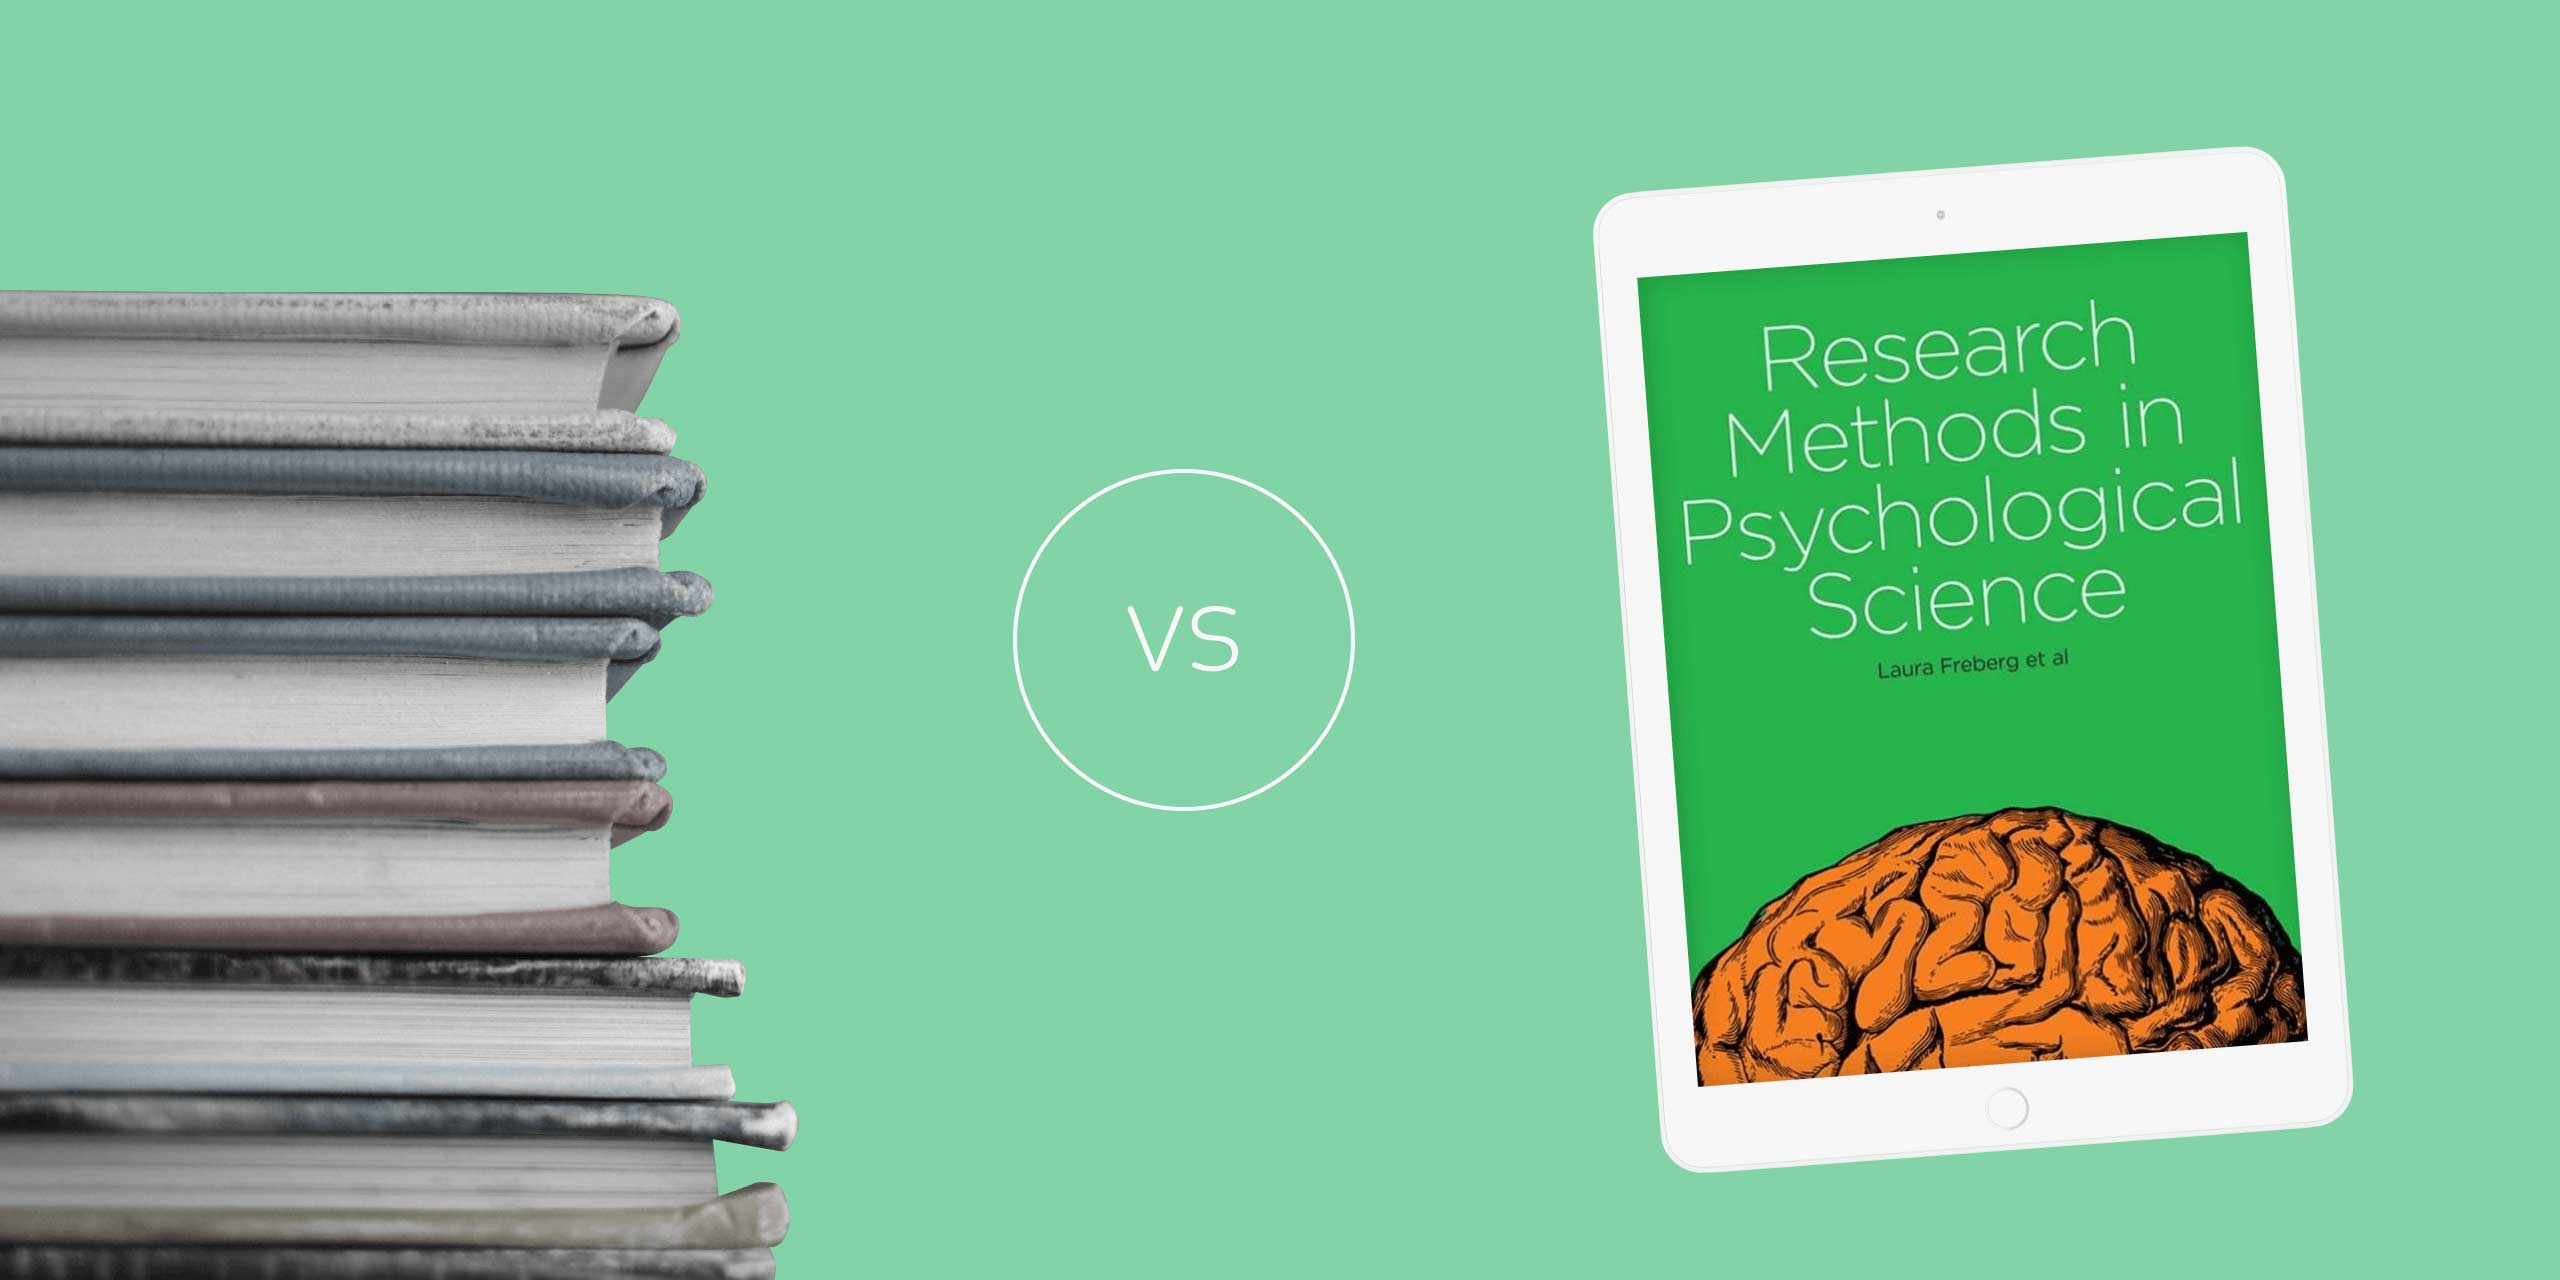 Research Methods in Psychological Science Textbooks: Which Is The Best?